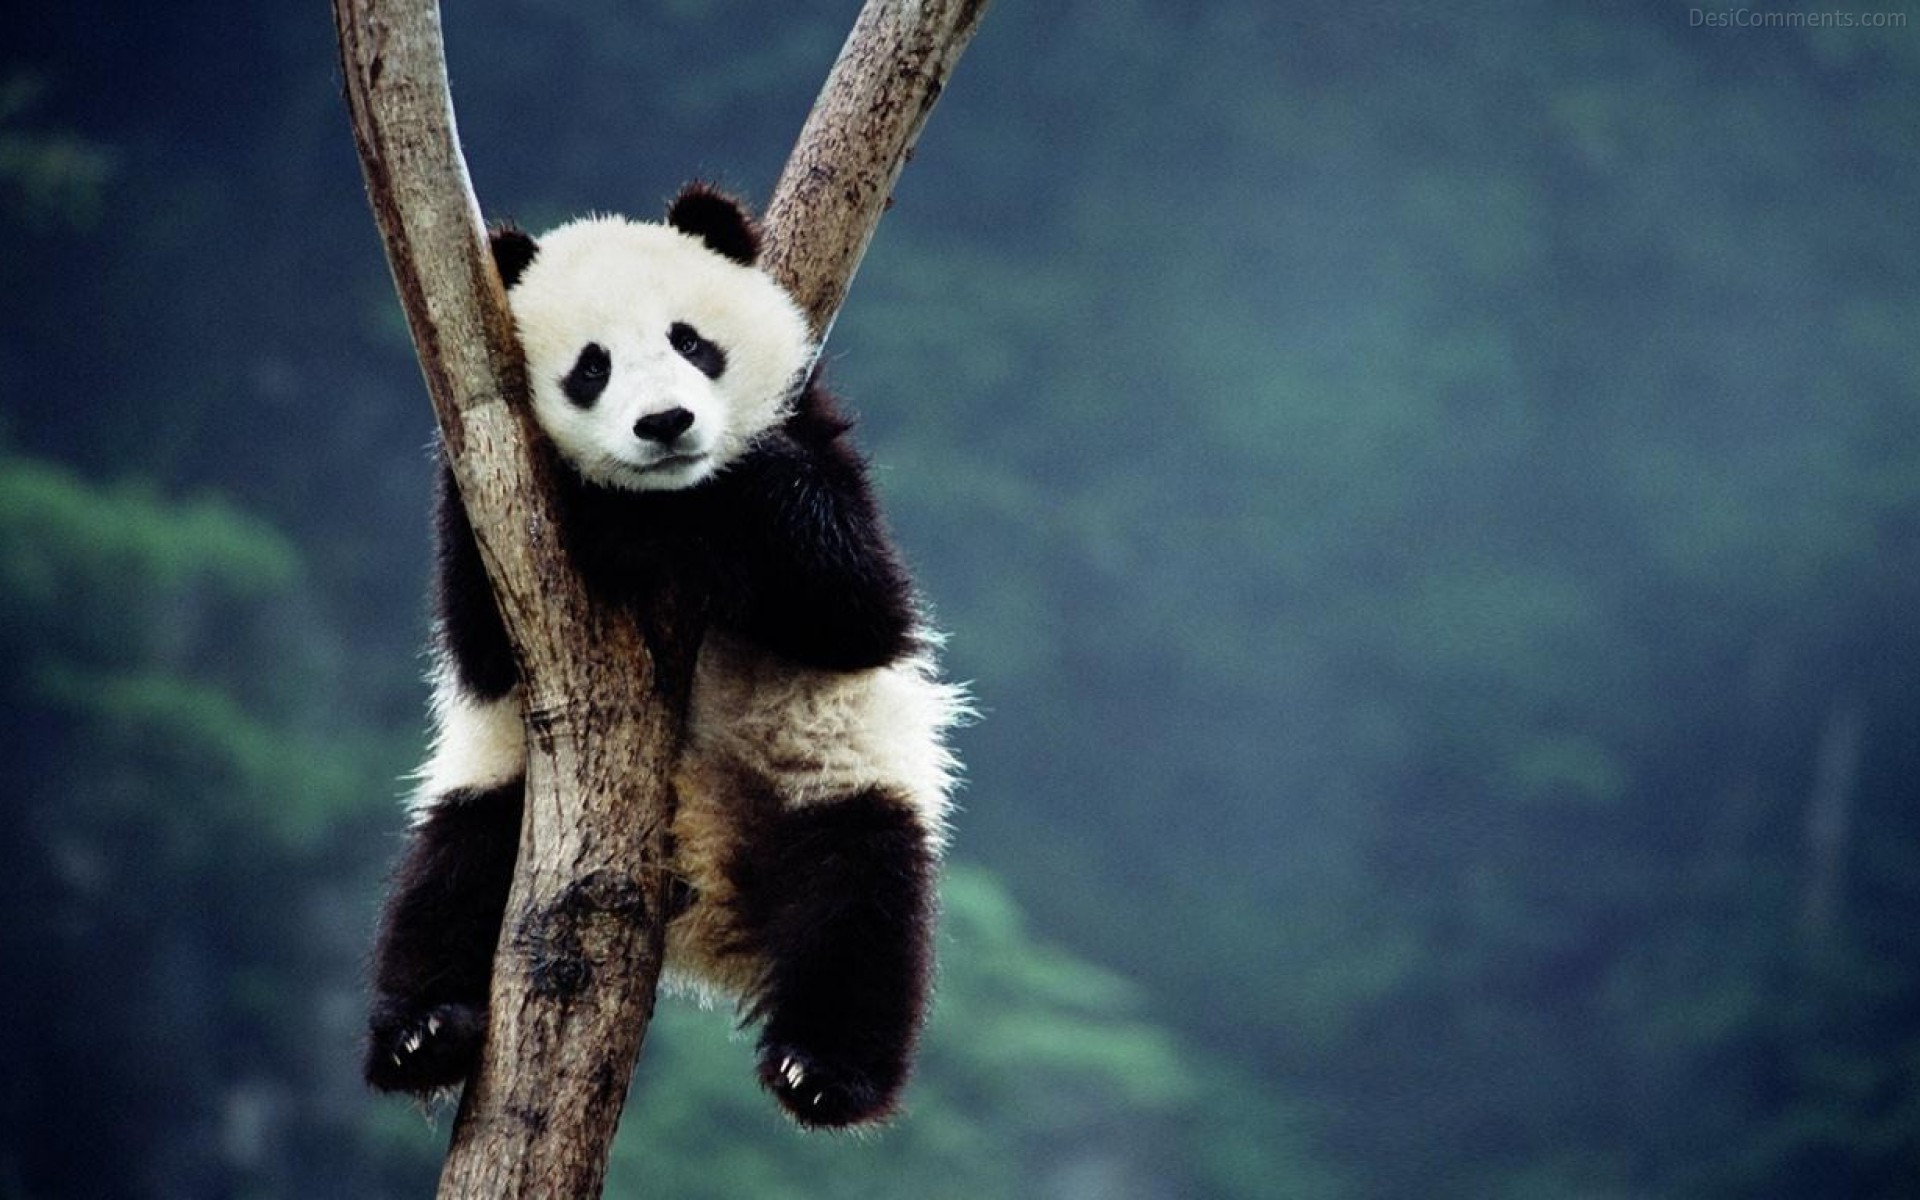 Love Wallpaper With Quotes In Hindi Panda Sitting On A Tree Desicomments Com